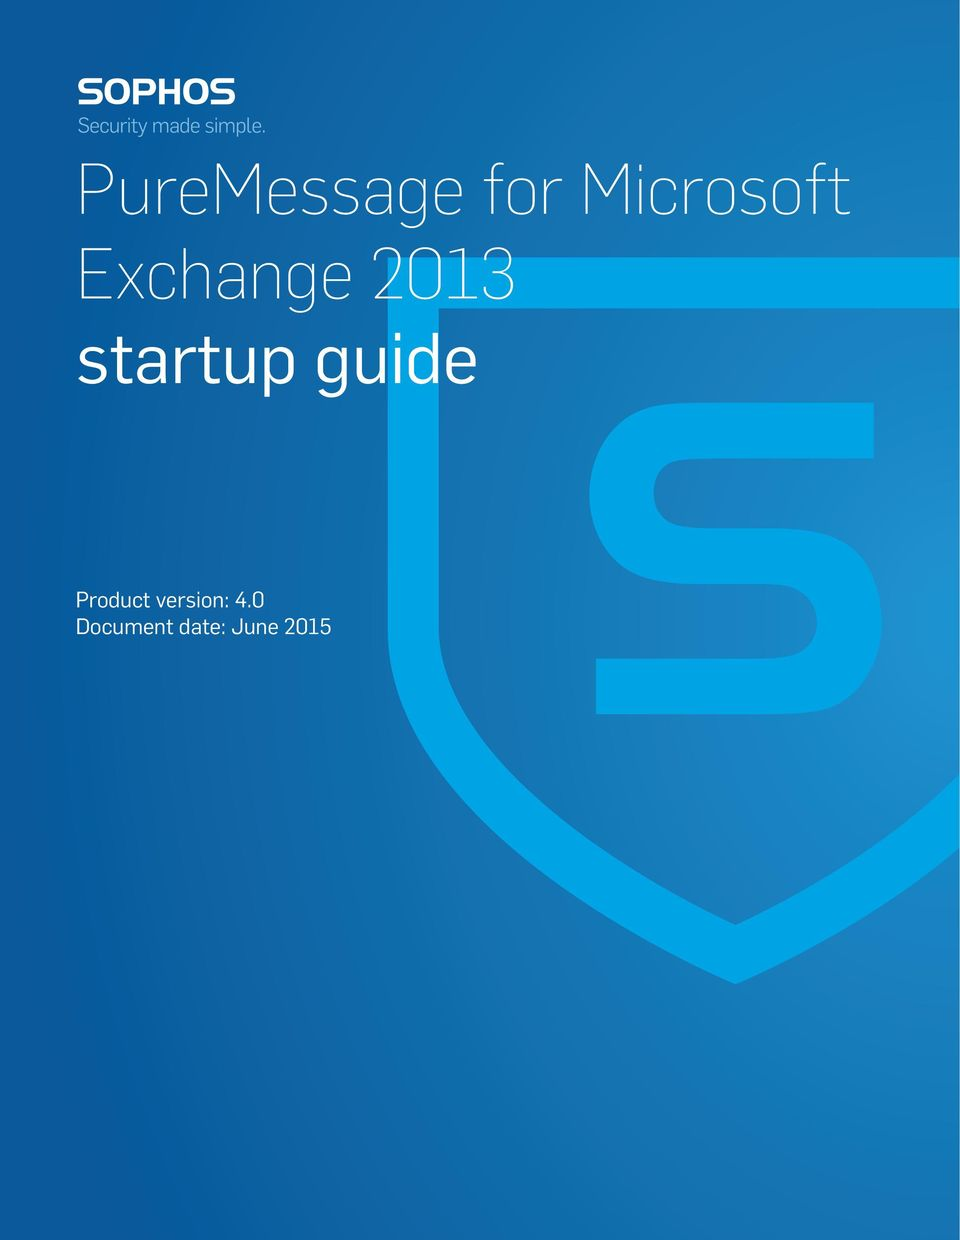 startup guide Product